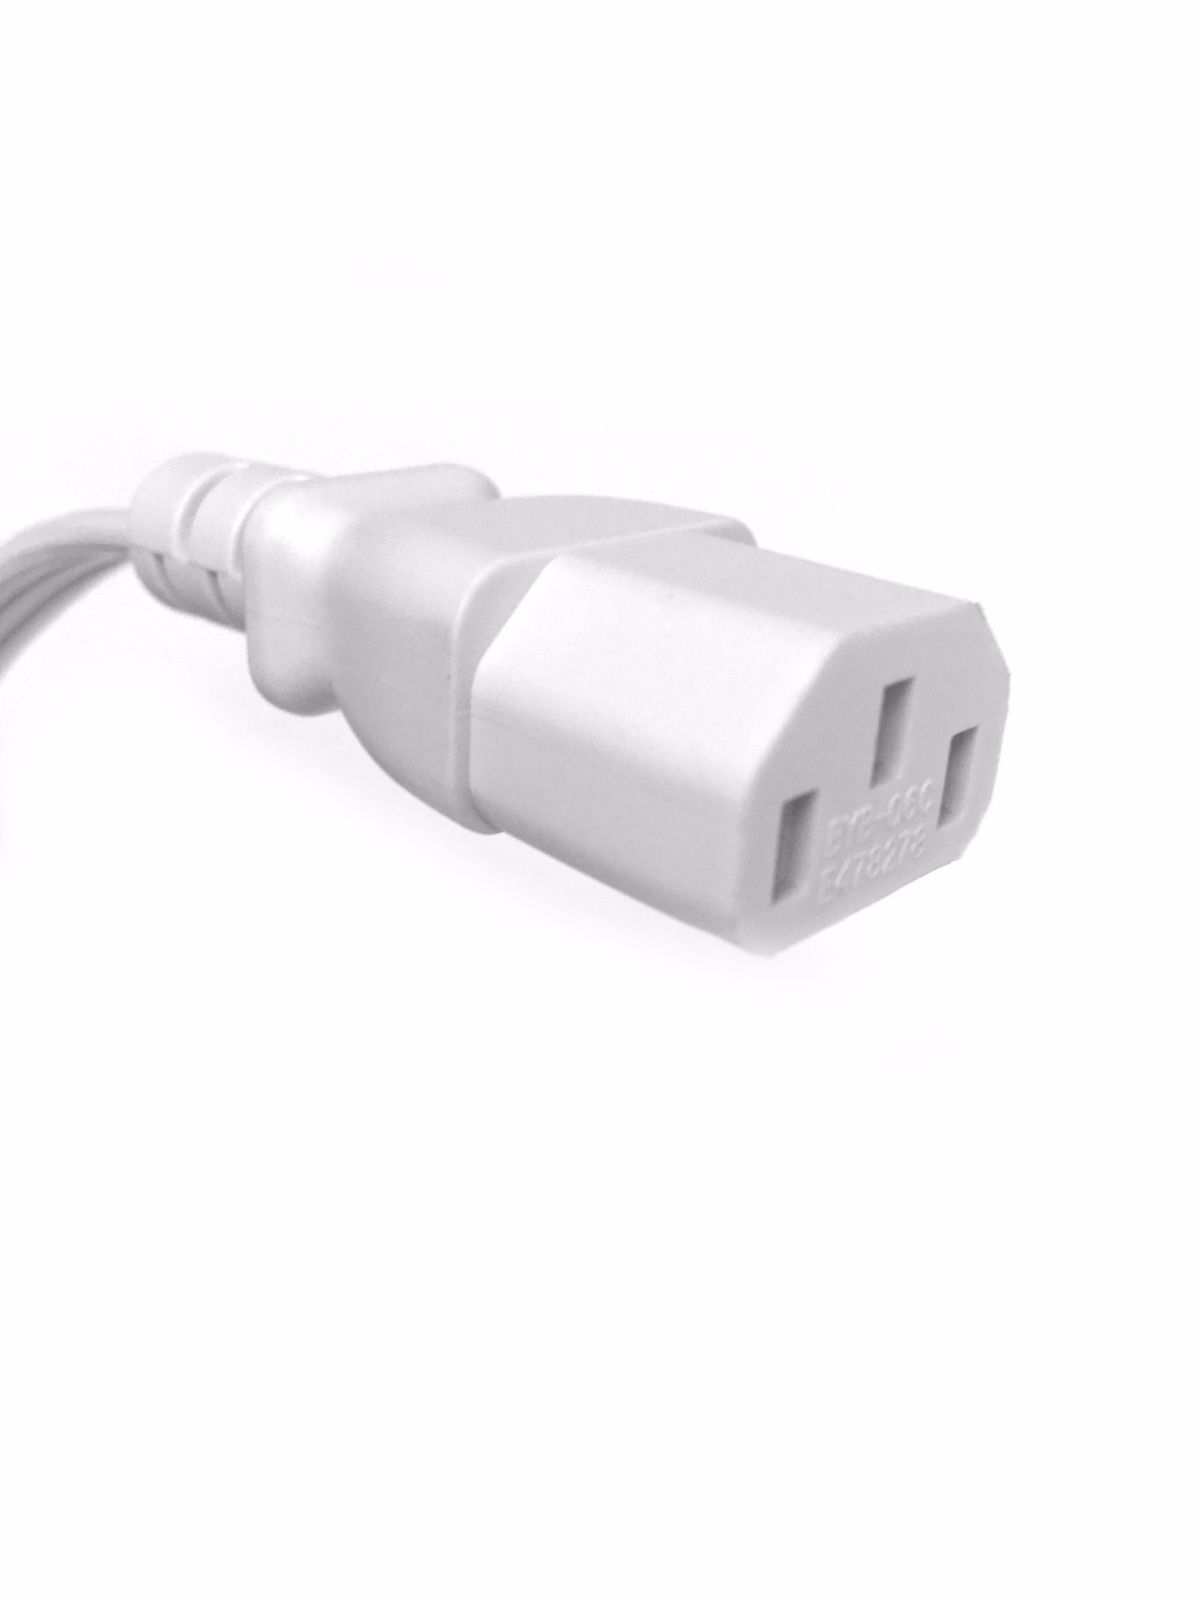 BYBON (100PACK) 3ft 18 AWG SJT Universal Computer Power Cord UL  Black or White